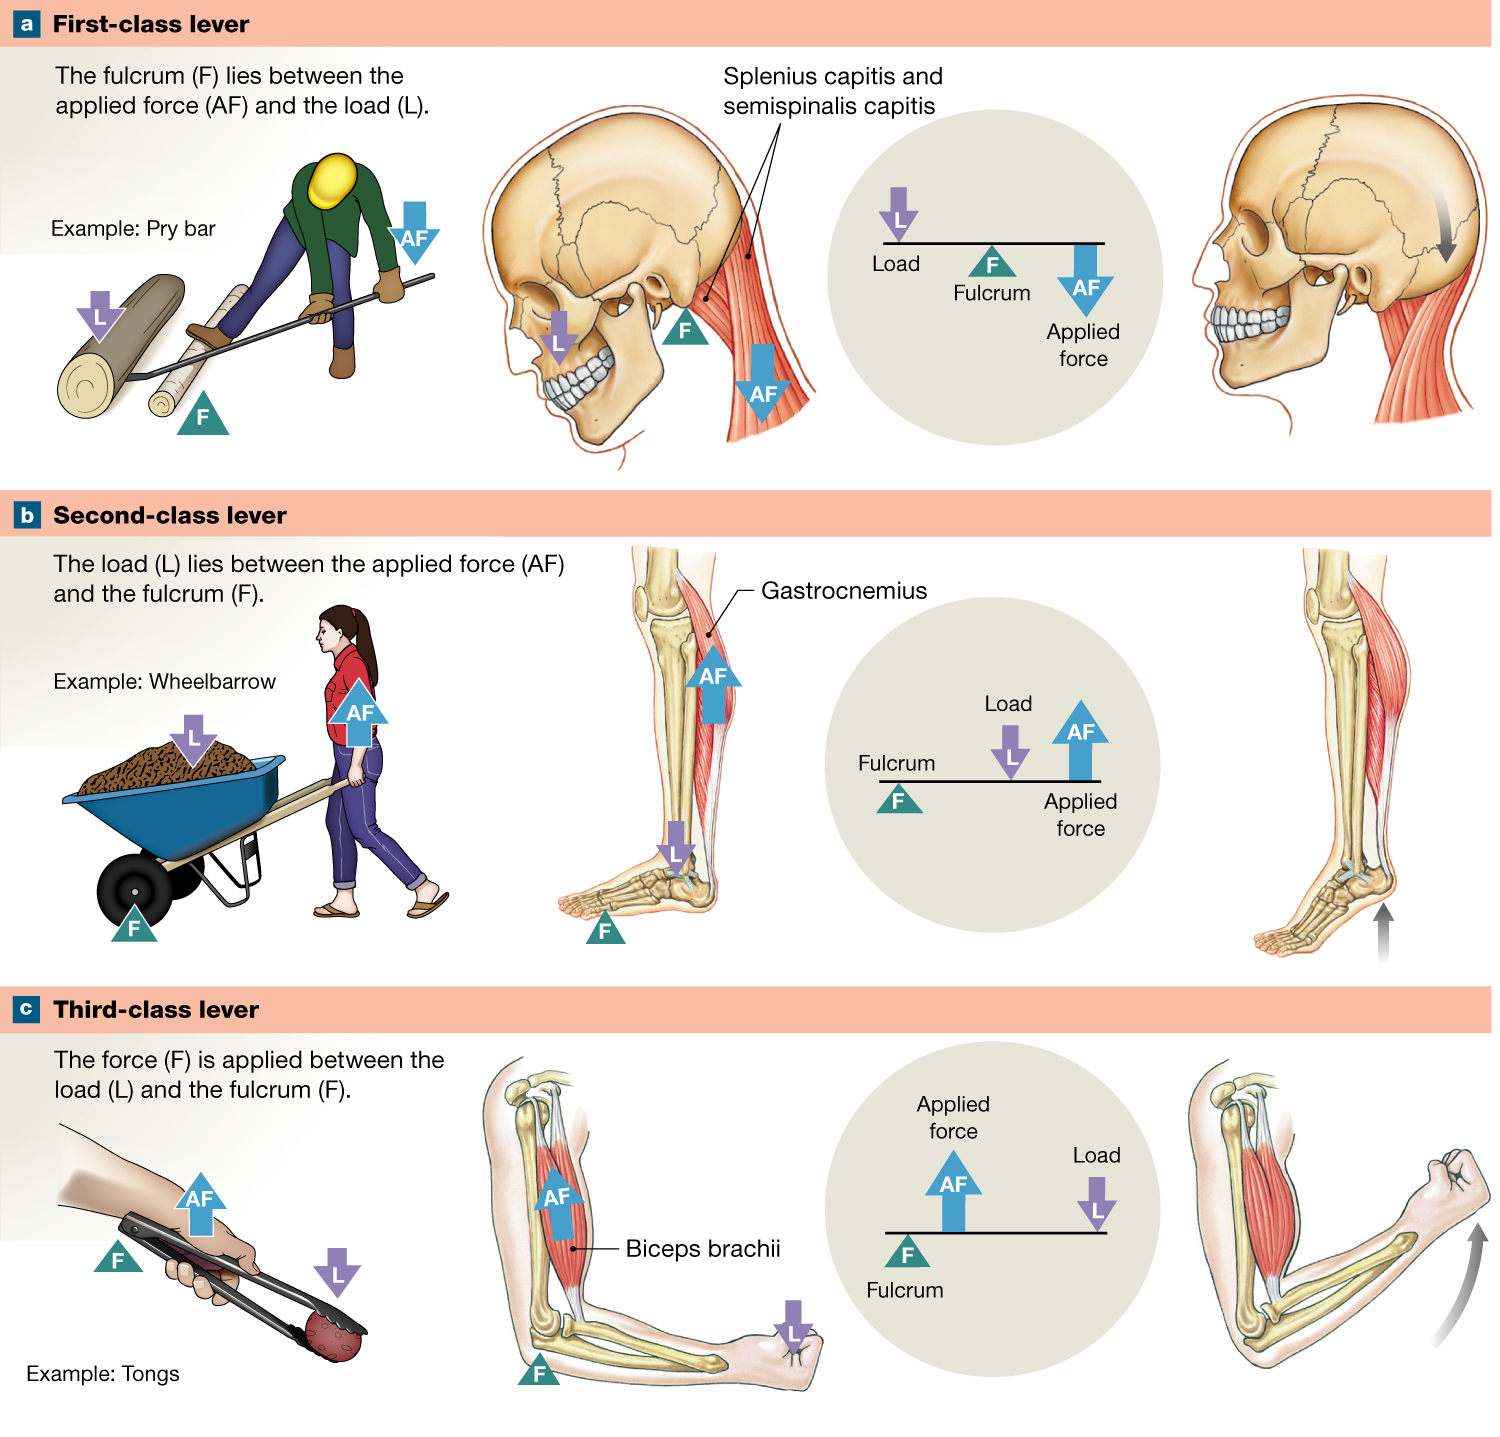 11 2 The Use Of Bones As Levers Increases Muscle Efficiency